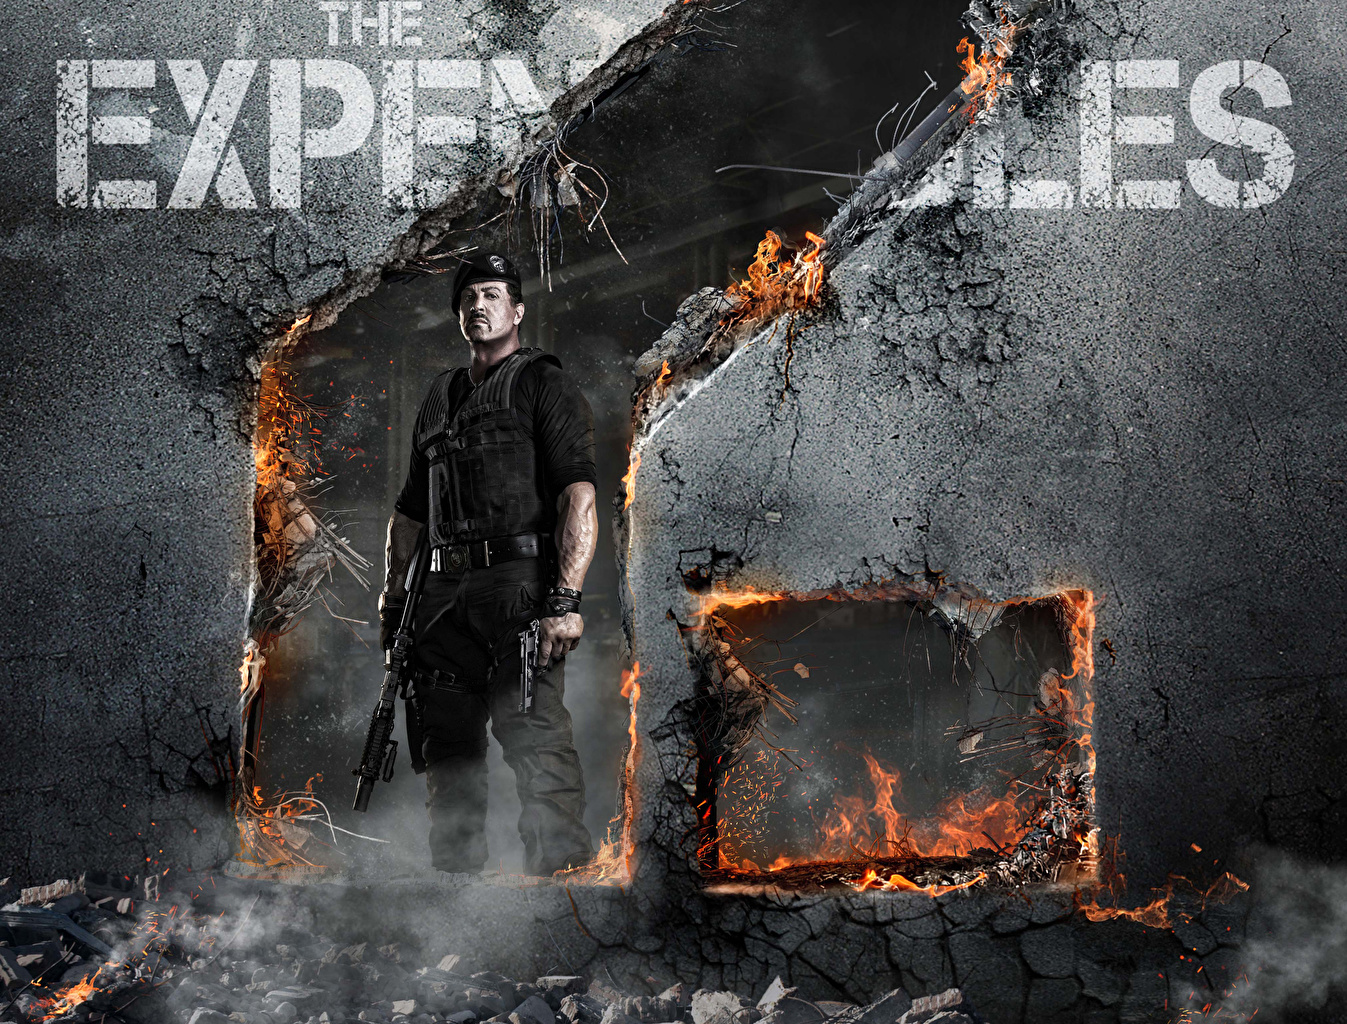 Desktop Wallpapers The Expendables 2010 Sylvester Stallone Movies film